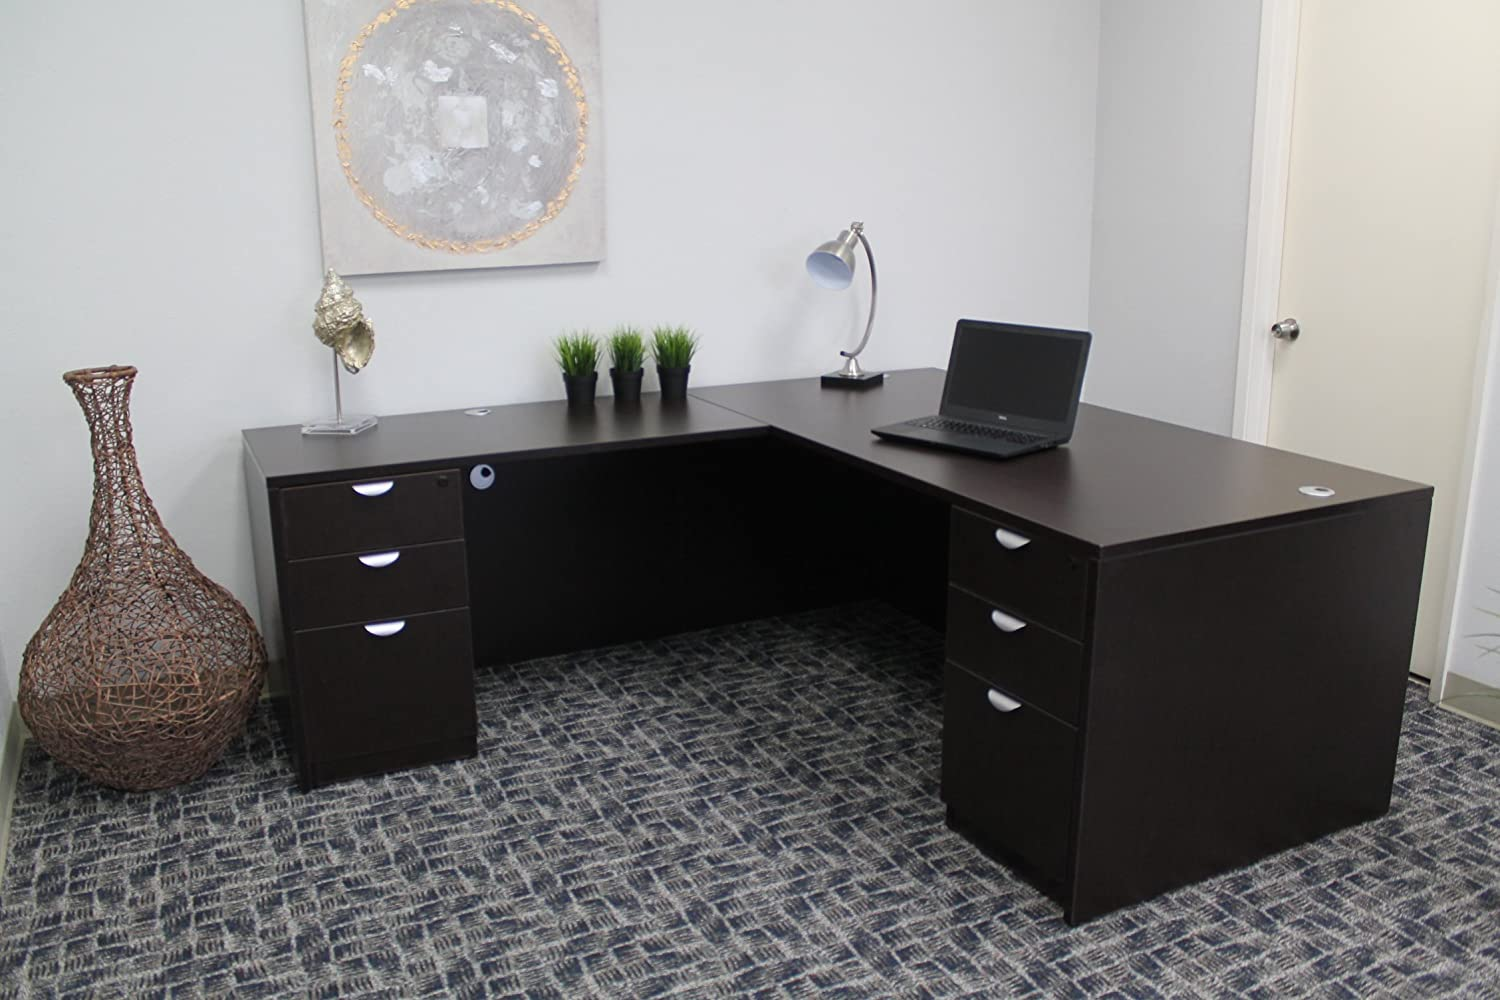 Boss Office Products Holland 71 Executive L-Shape Corner Desk with Dual File Storage Pedestals, Mocha